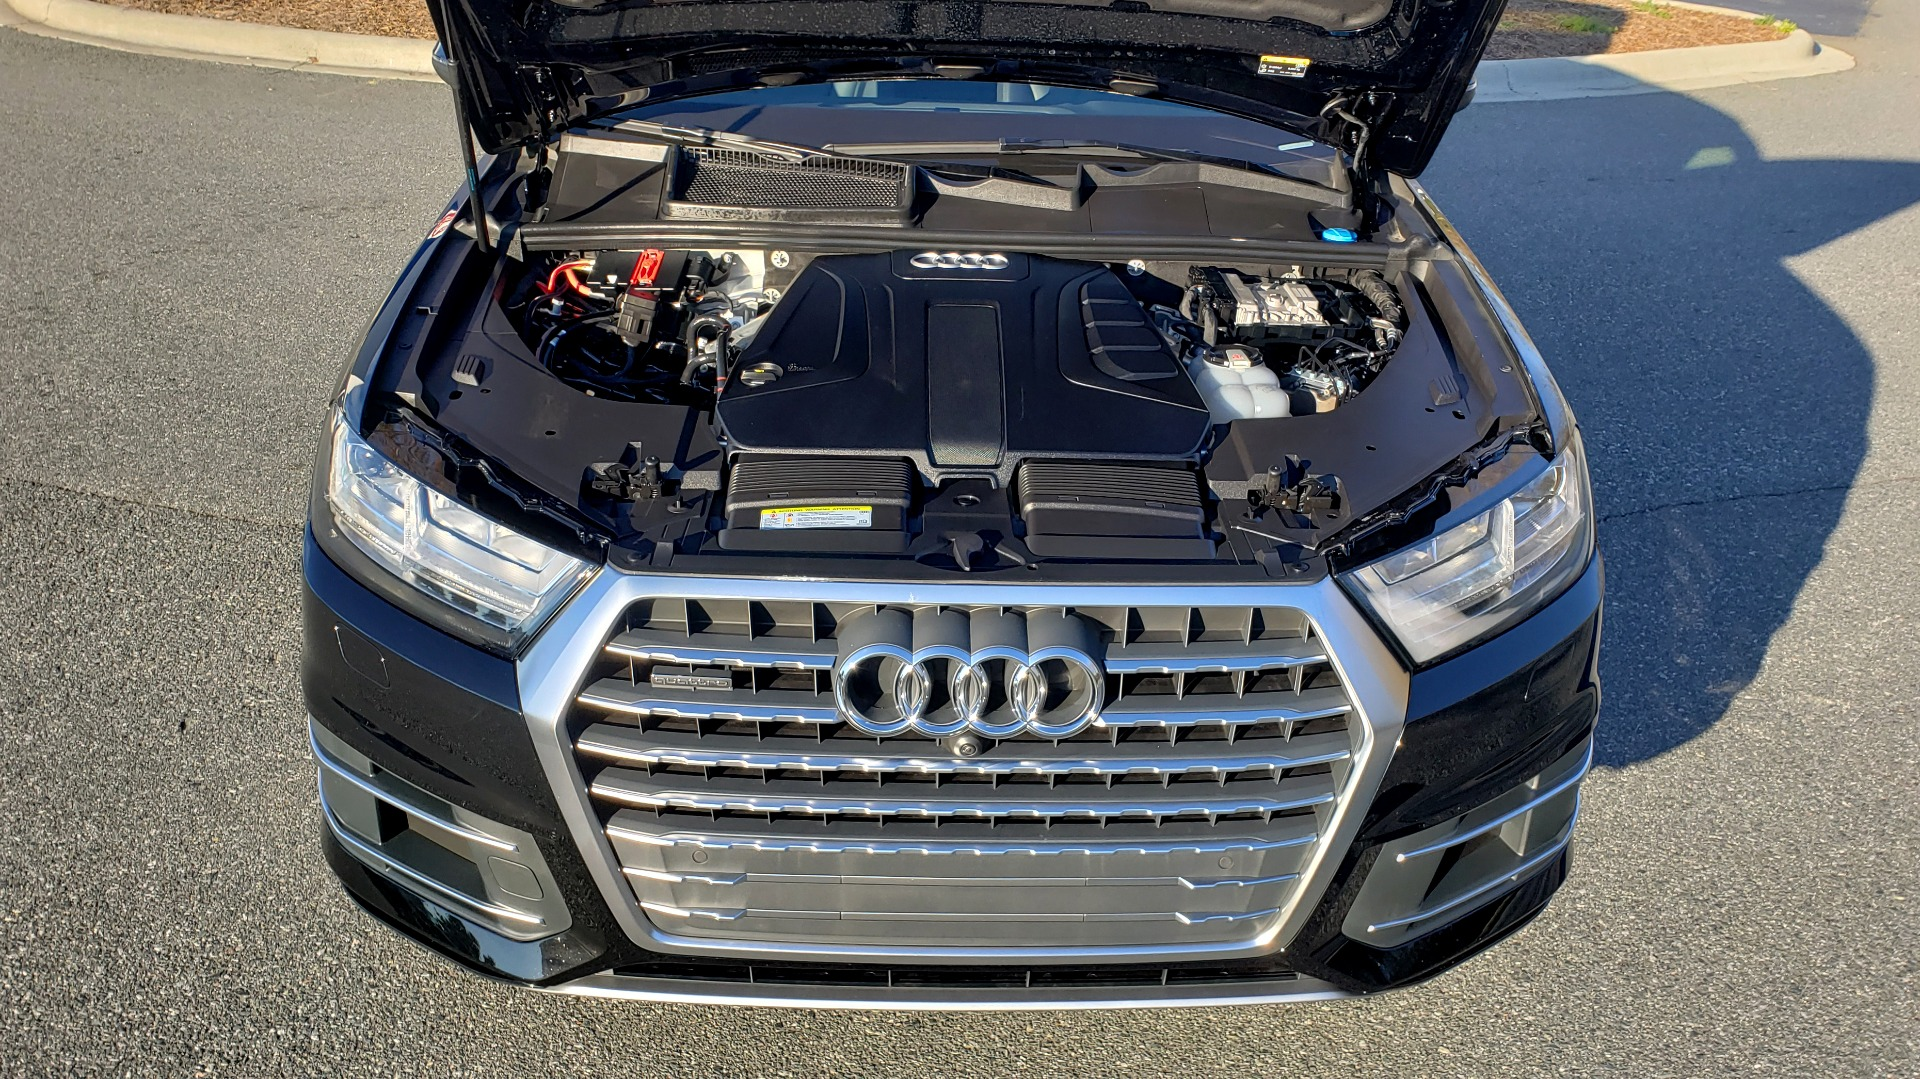 Used 2019 Audi Q7 PREMIUM PLUS / NAV / PANO-ROOF / 3-ROW / REARVIEW for sale Sold at Formula Imports in Charlotte NC 28227 9